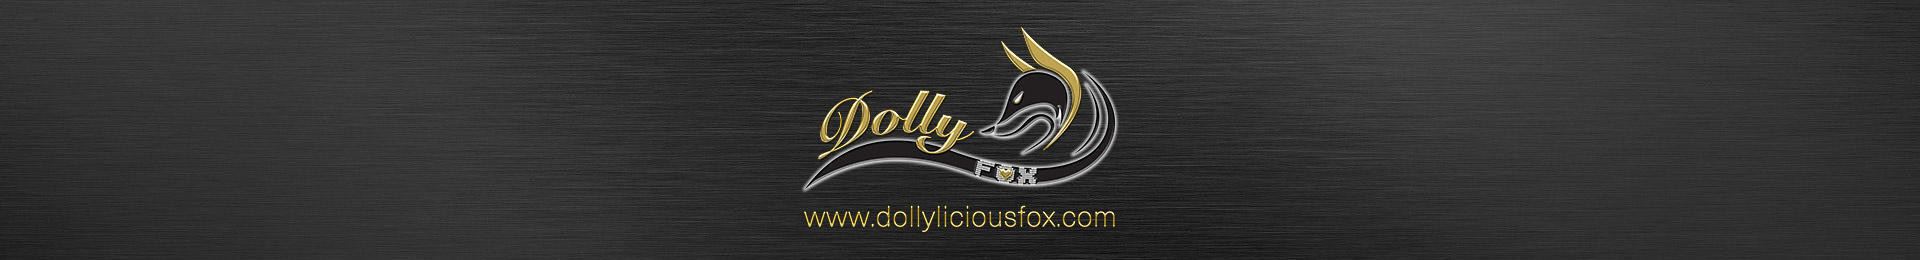 Dollylicious Fox